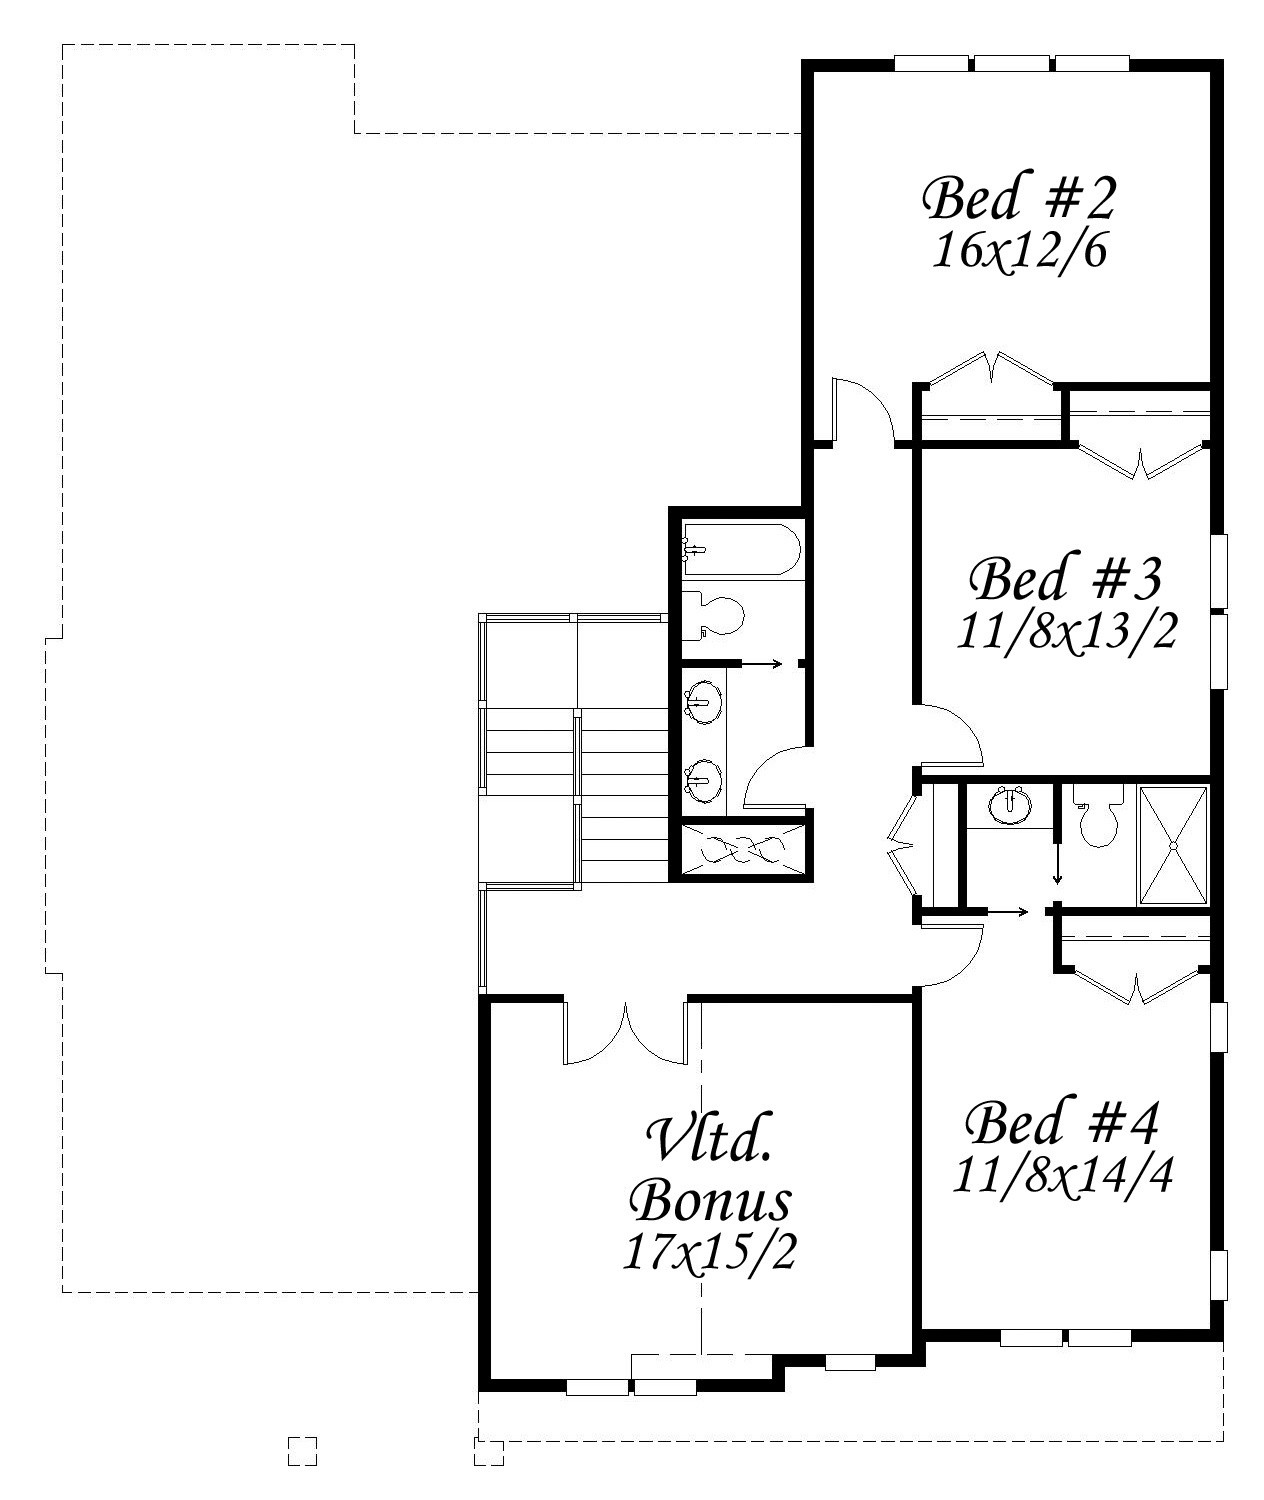 The Jordan Tofte House Plan